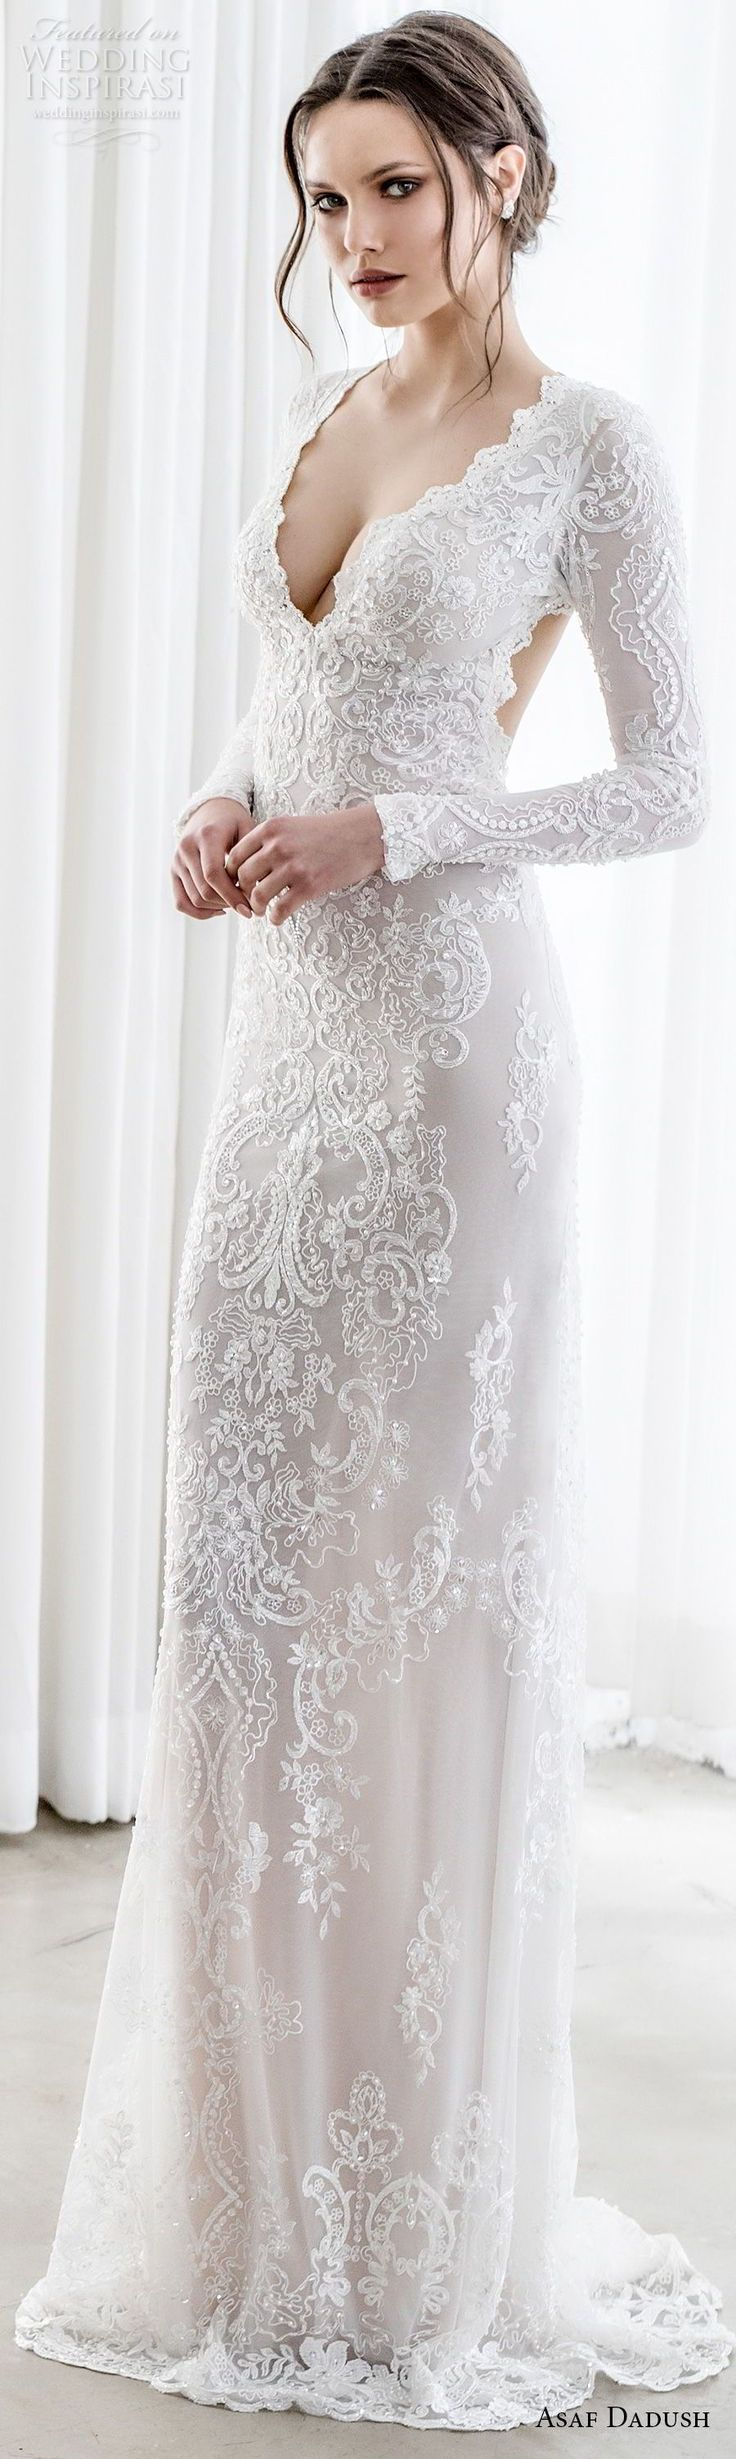 asaf dadush 2017 bridal long sleeves deep v sweetheart neckline full embellishment sexy elegant sheath wedding dress keyhole back sweep train (06) lv -- Asaf Dadush 2017 Wedding Dresses